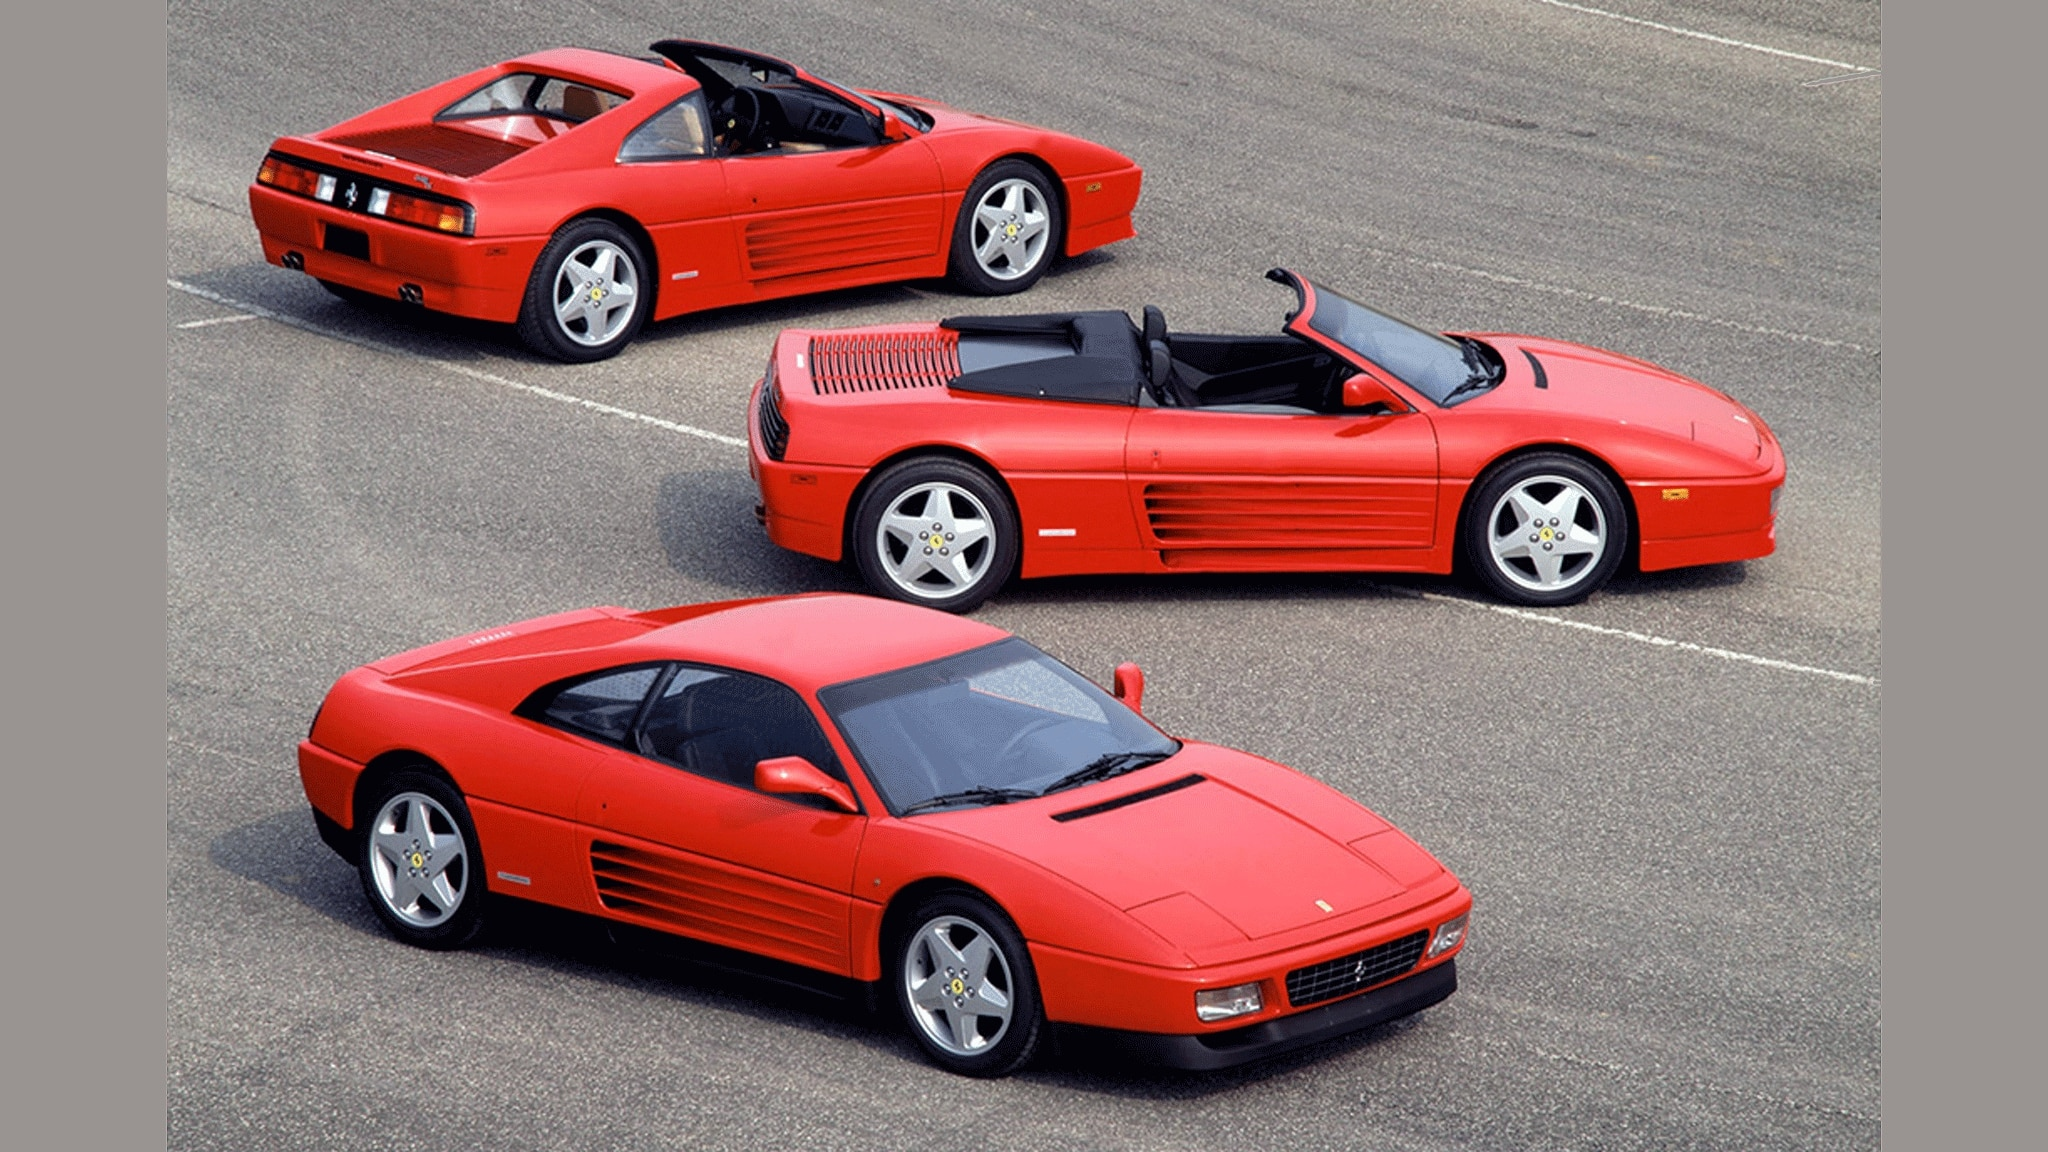 Ferrari 348: History, Photos, Generations, Specifications